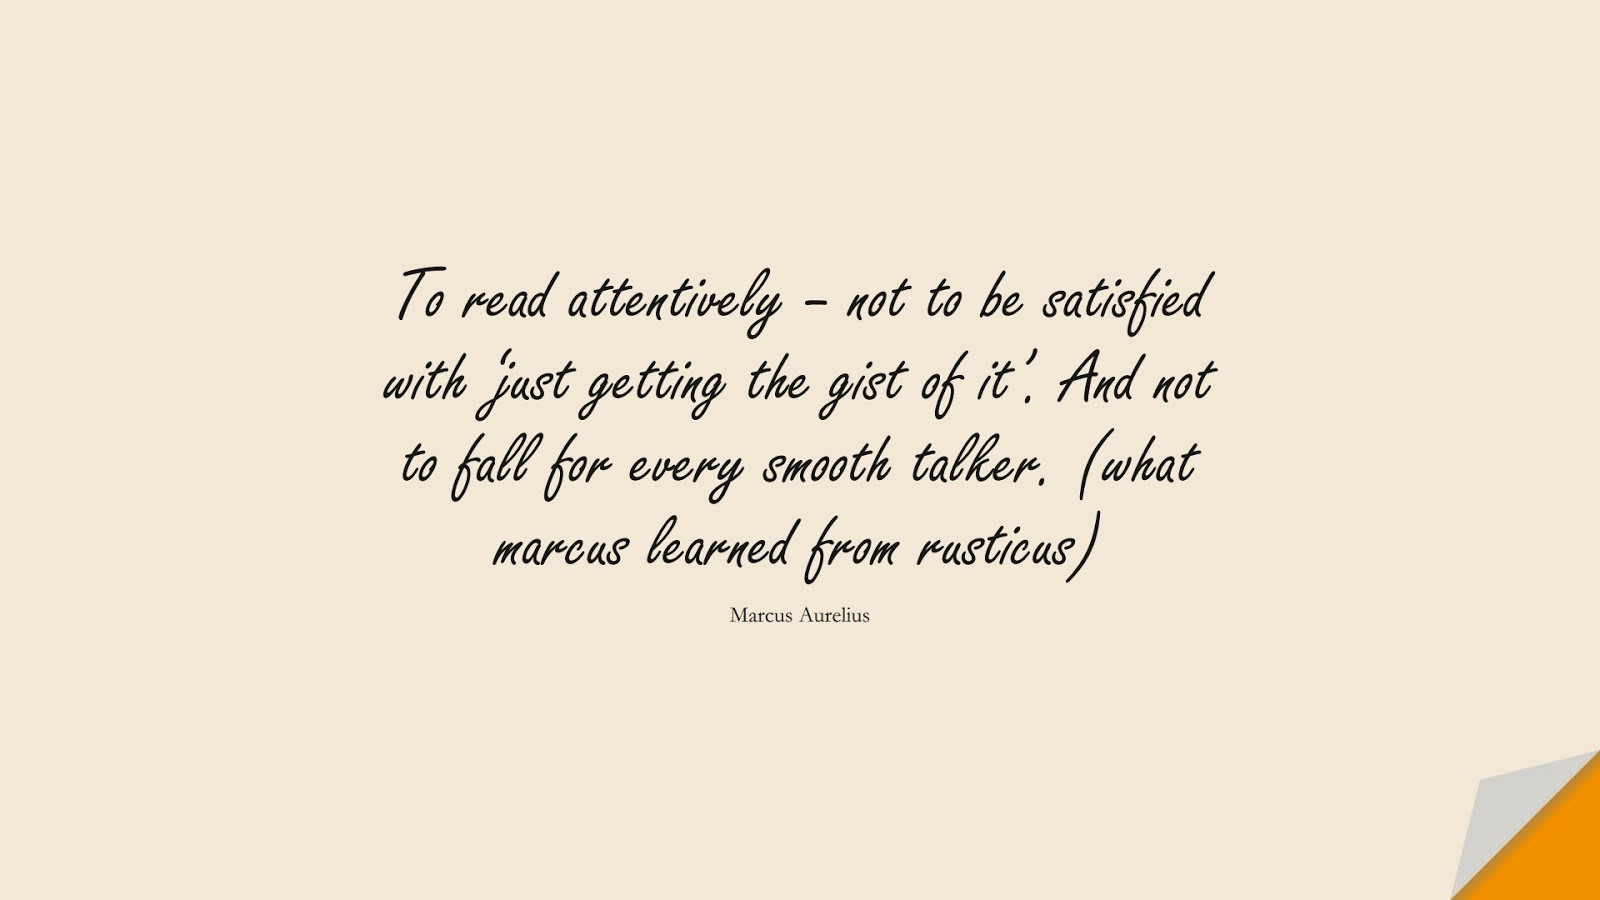 To read attentively – not to be satisfied with 'just getting the gist of it'. And not to fall for every smooth talker. (what marcus learned from rusticus) (Marcus Aurelius);  #MarcusAureliusQuotes